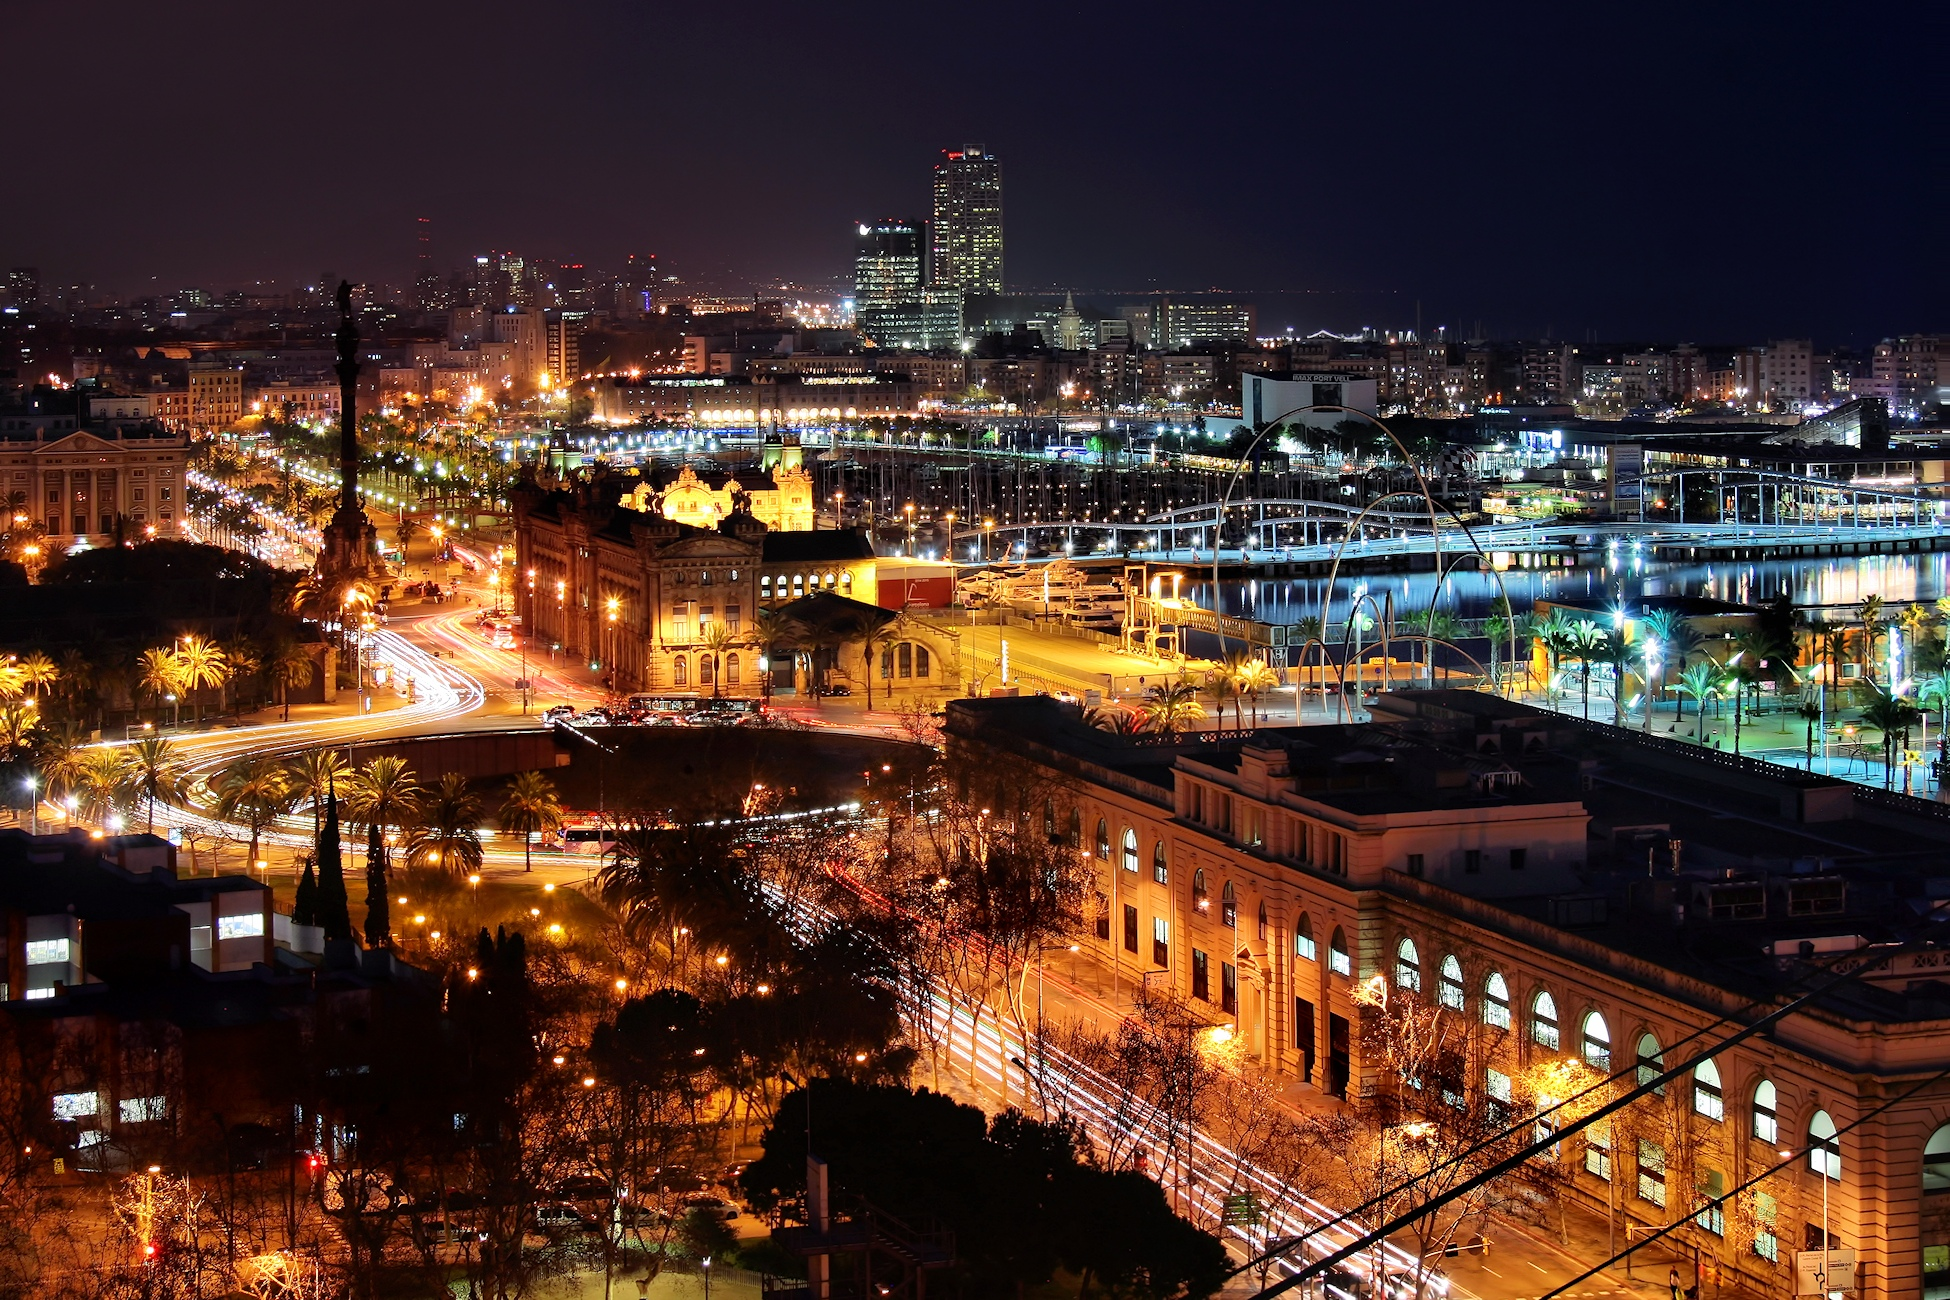 Wide shot of Barcelona at night